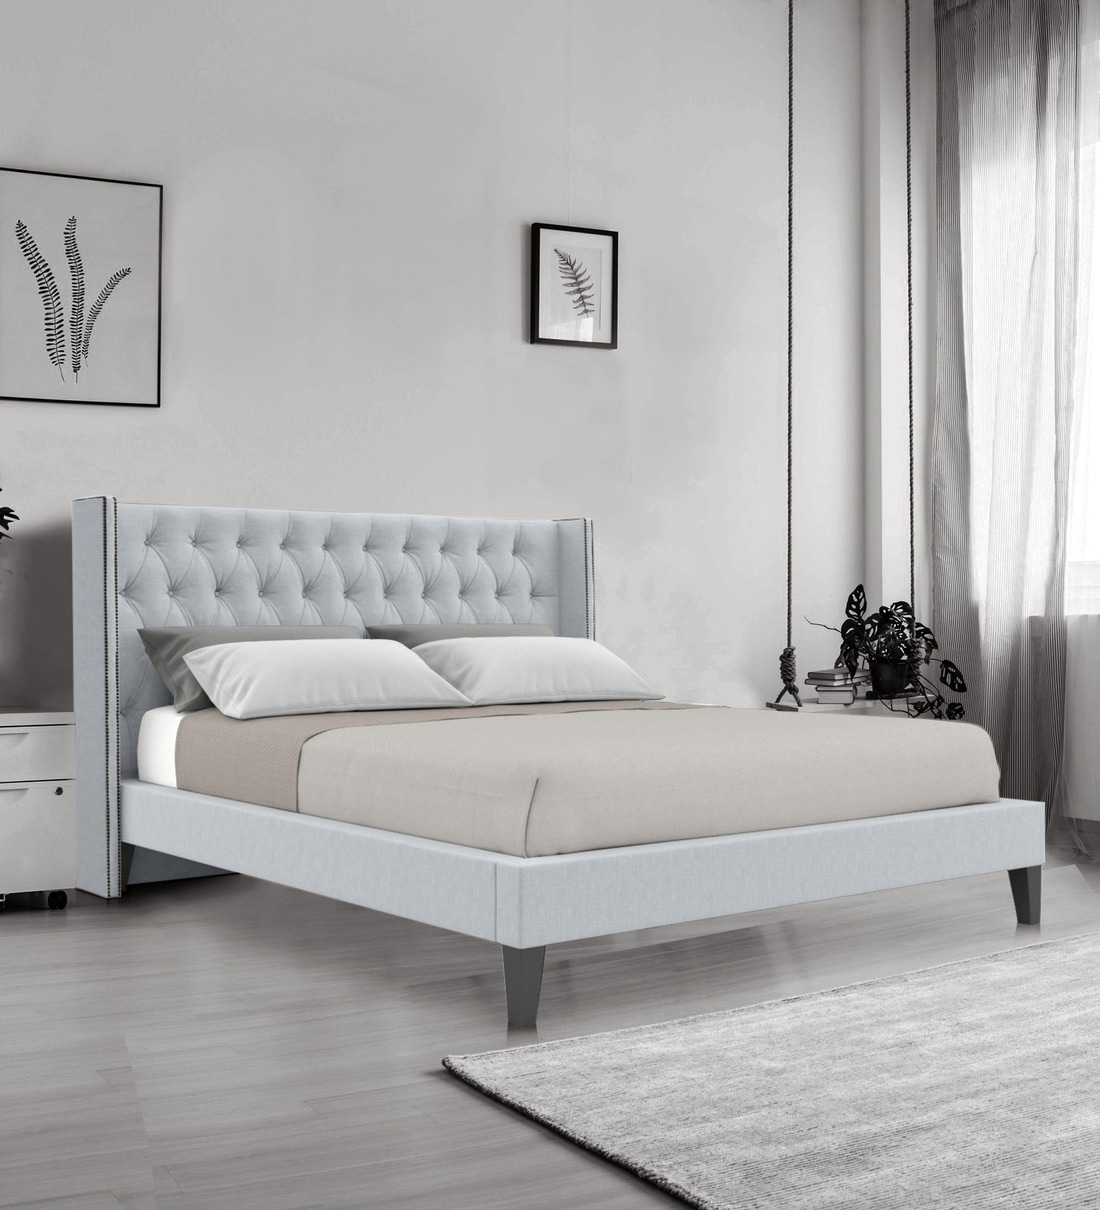 Buy Noa King Size Upholstered Bed In Light Grey Colour By Dreamzz Furniture Online King Size Upholstered Beds Beds Furniture Pepperfry Product